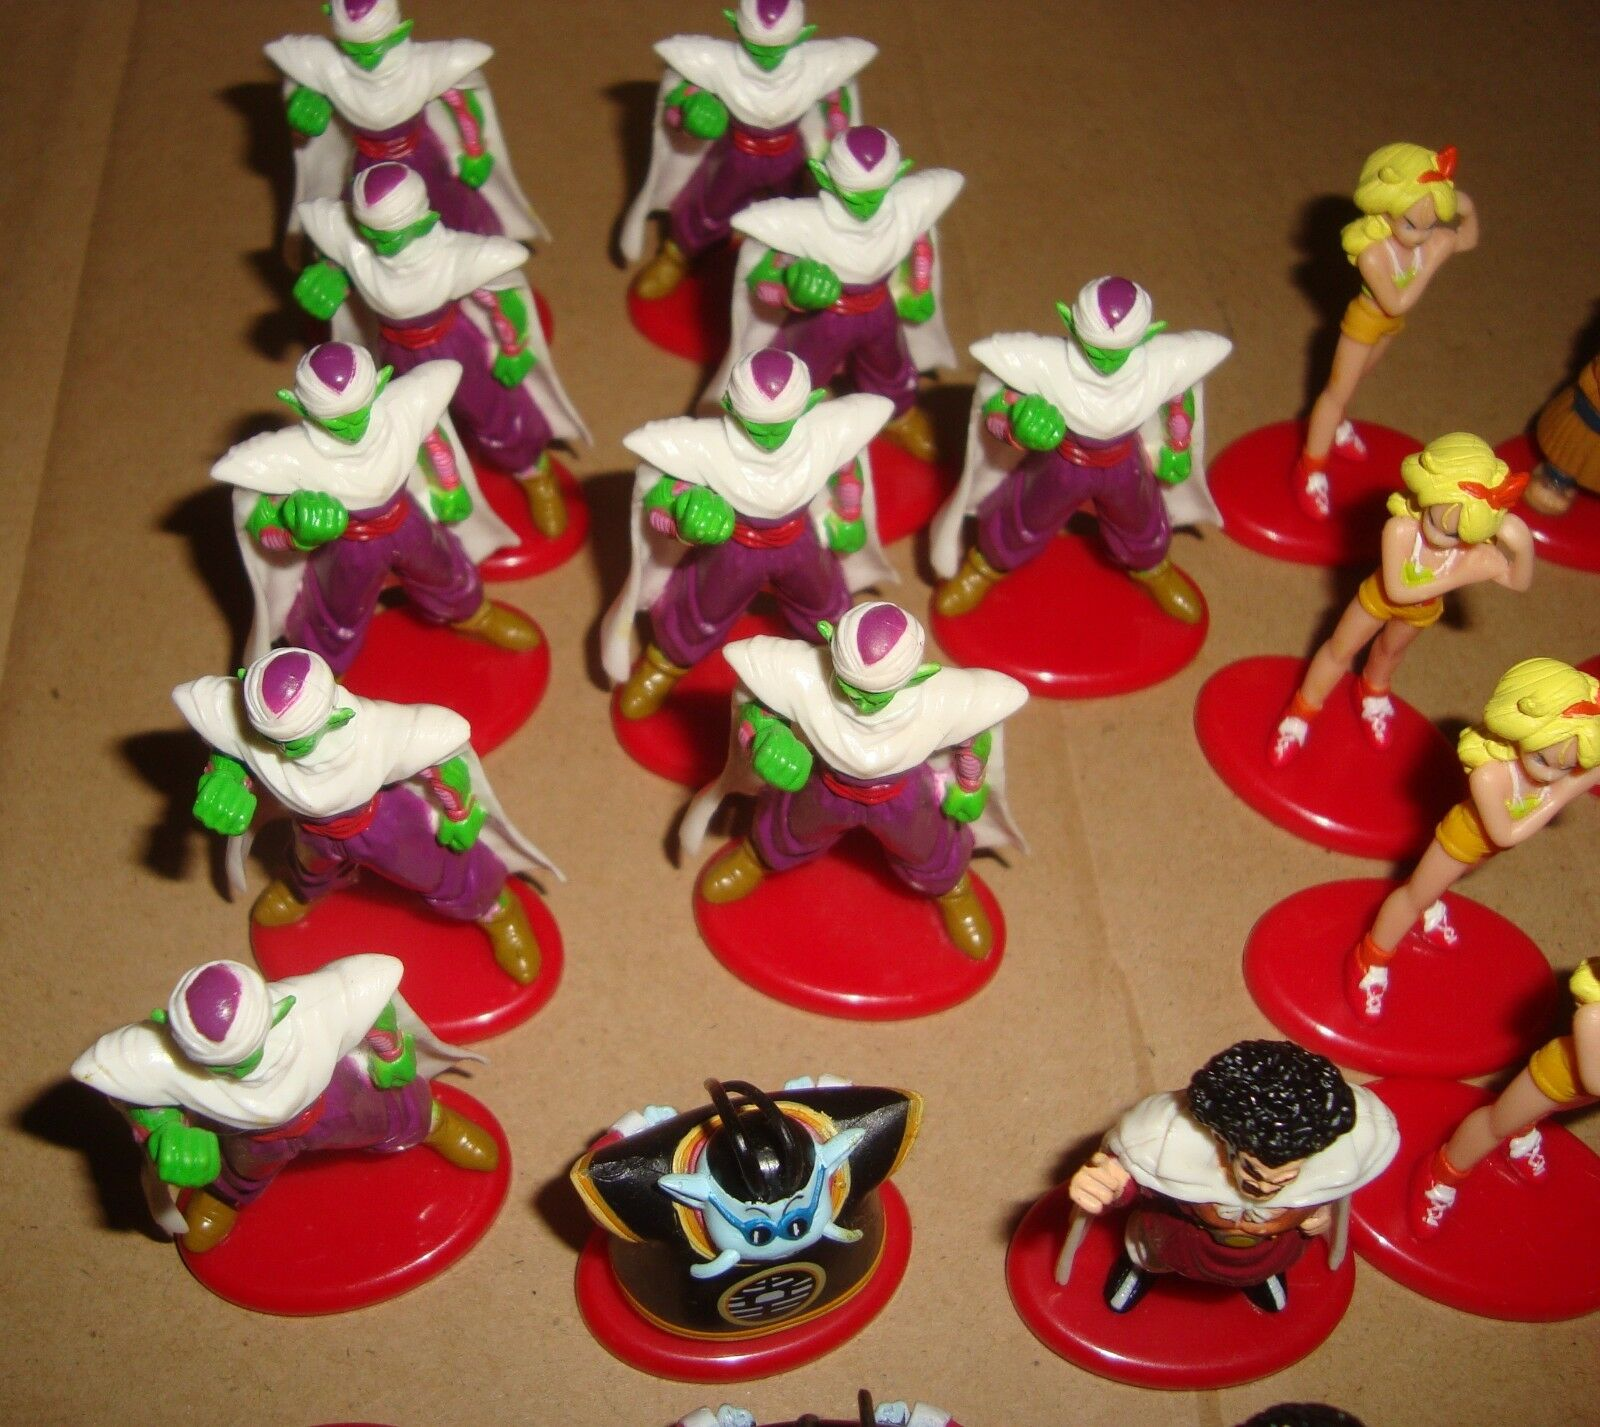 DRAGON BALL LOTTO 39 MINI FIGURE PICCOLO FREEZA FREEZA FREEZA BULMA VEGETA CRYLIN MR.SATAN ac6a35